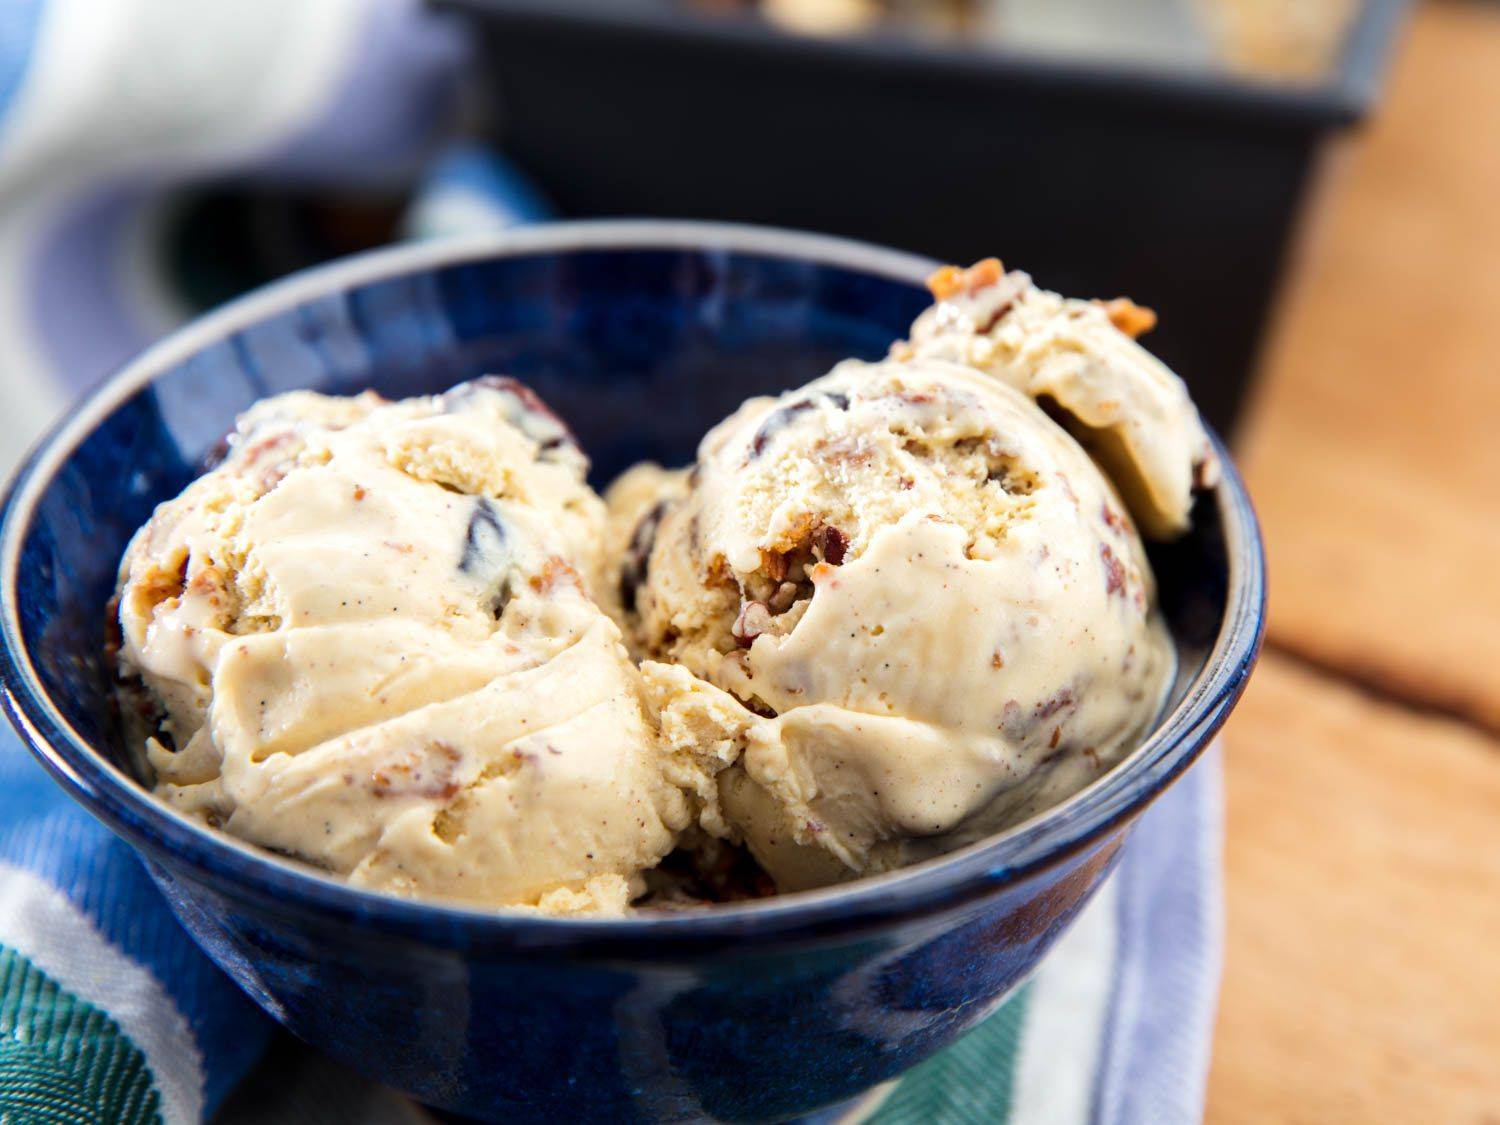 Two scoops of oatmeal cookie ice cream in a blue bowl